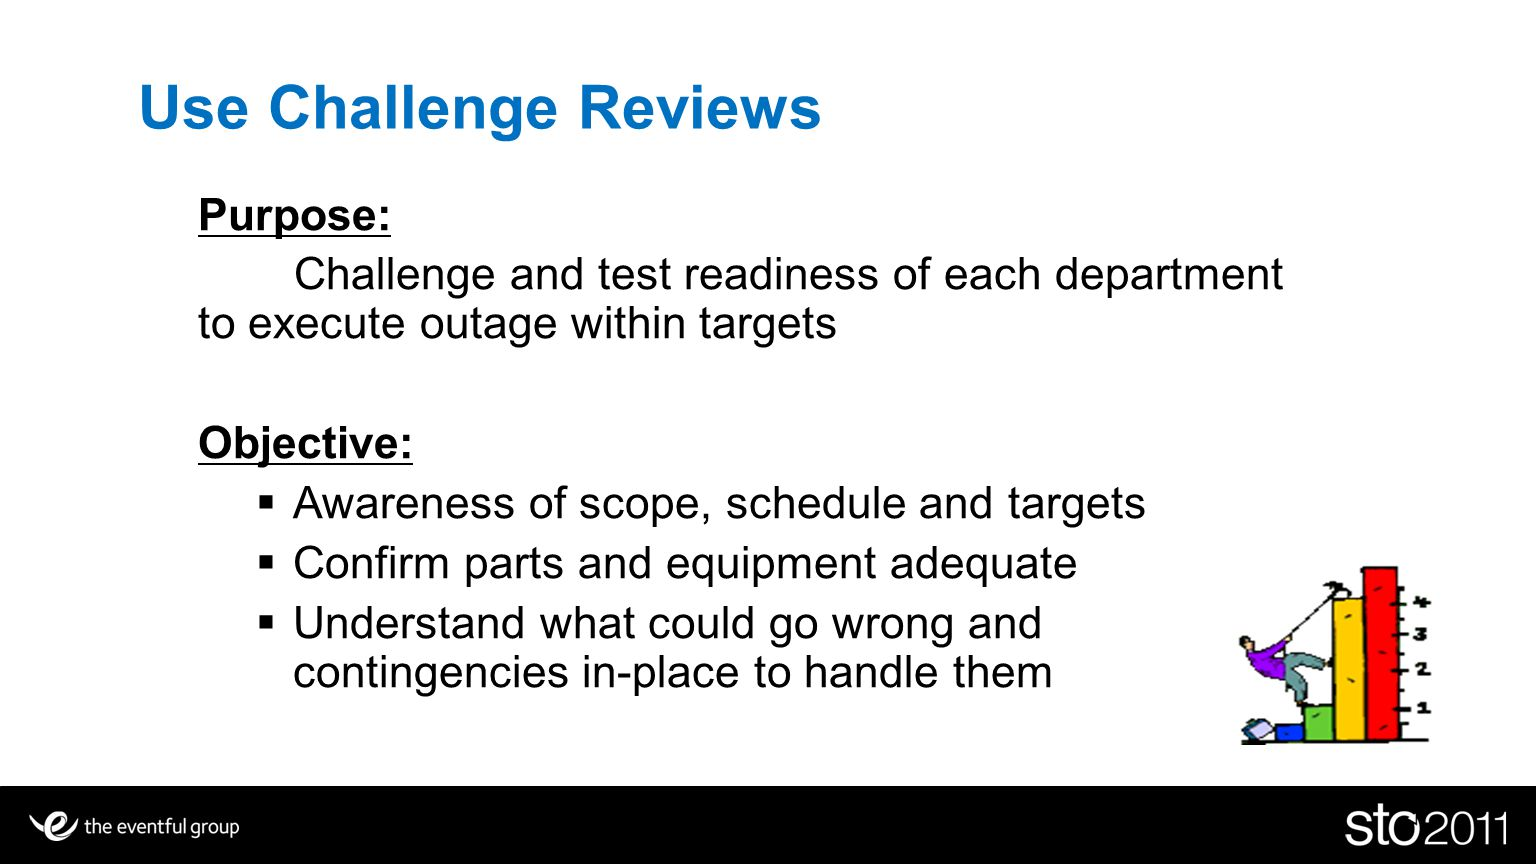 Use Challenge Reviews Purpose: Challenge and test readiness of each department to execute outage within targets Objective: Awareness of scope, schedule and targets Confirm parts and equipment adequate Understand what could go wrong and contingencies in-place to handle them